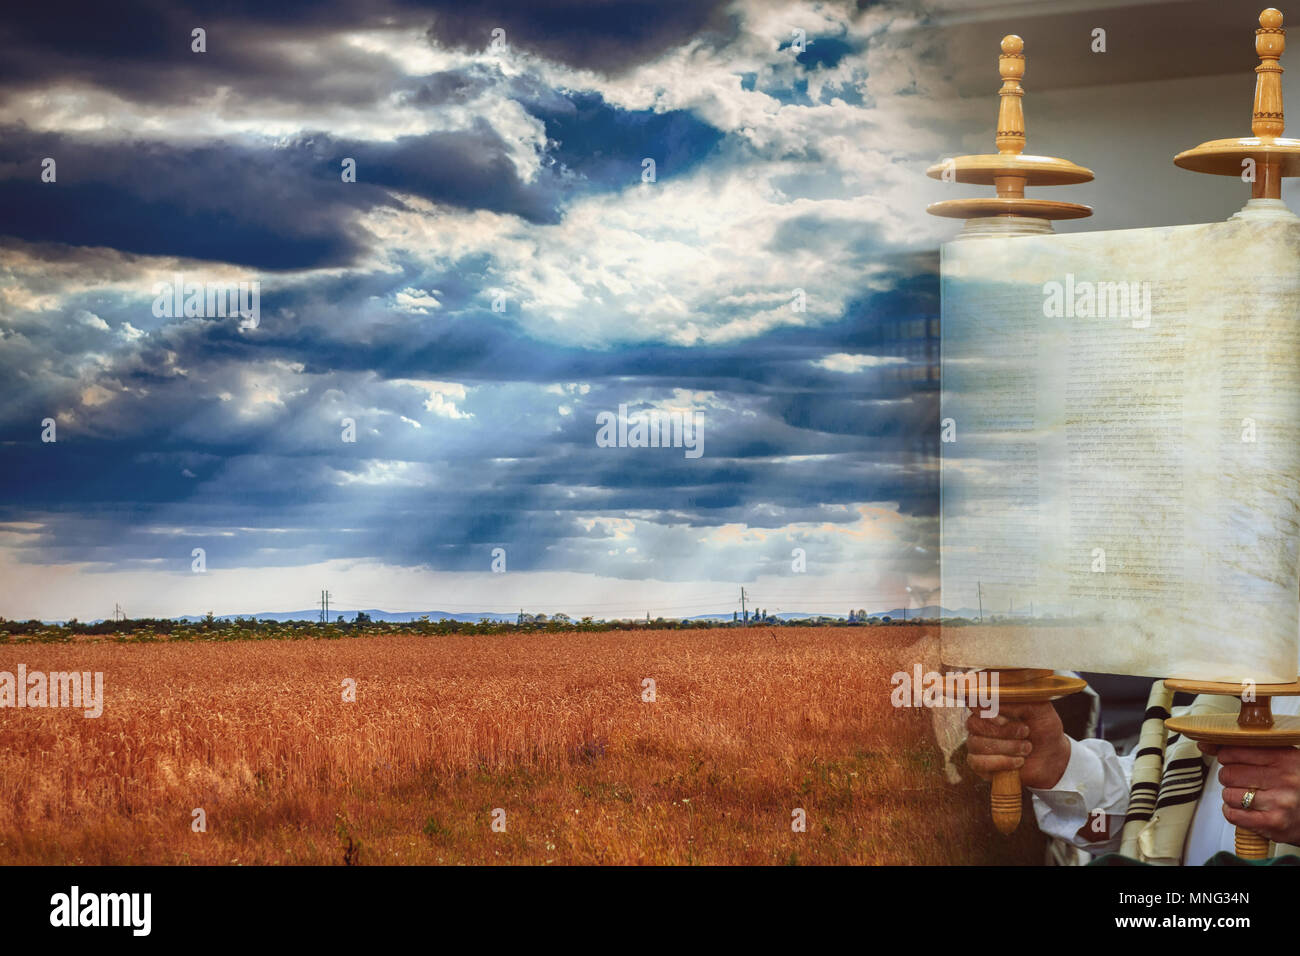 Torah scroll during the holy day of Shavuot Wheat field, wheat background - Stock Image